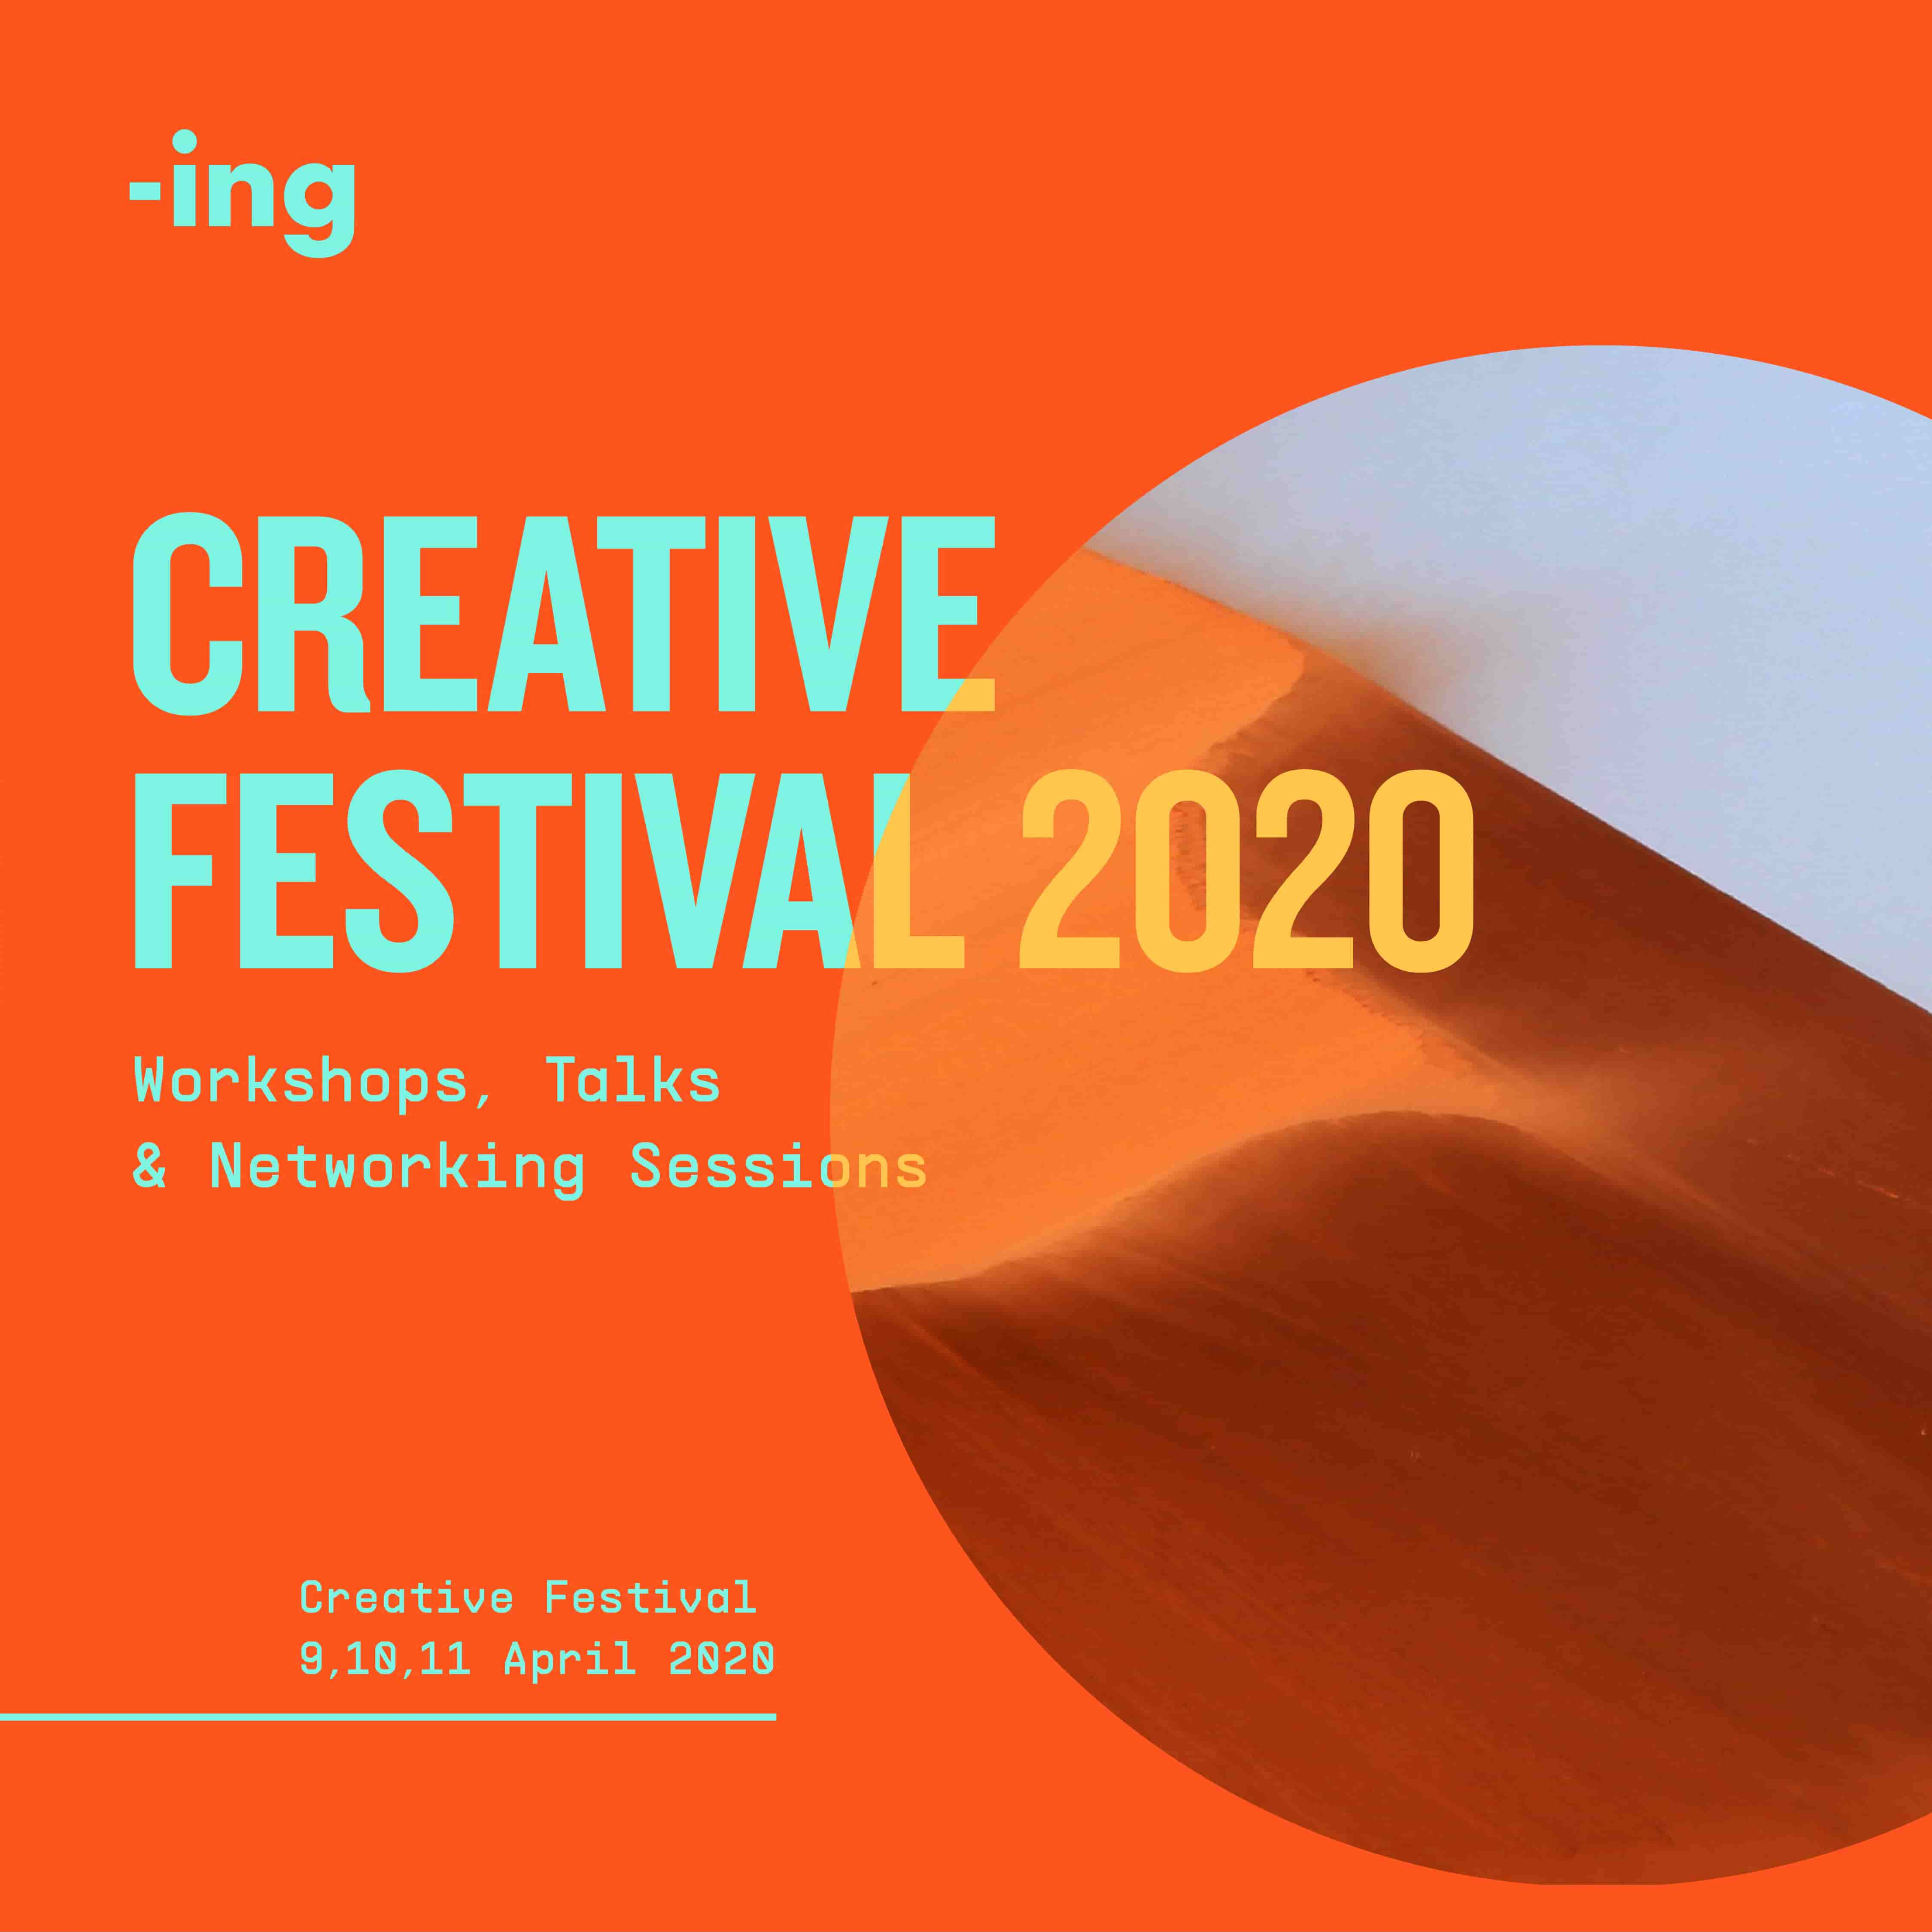 -ing Creative Festival